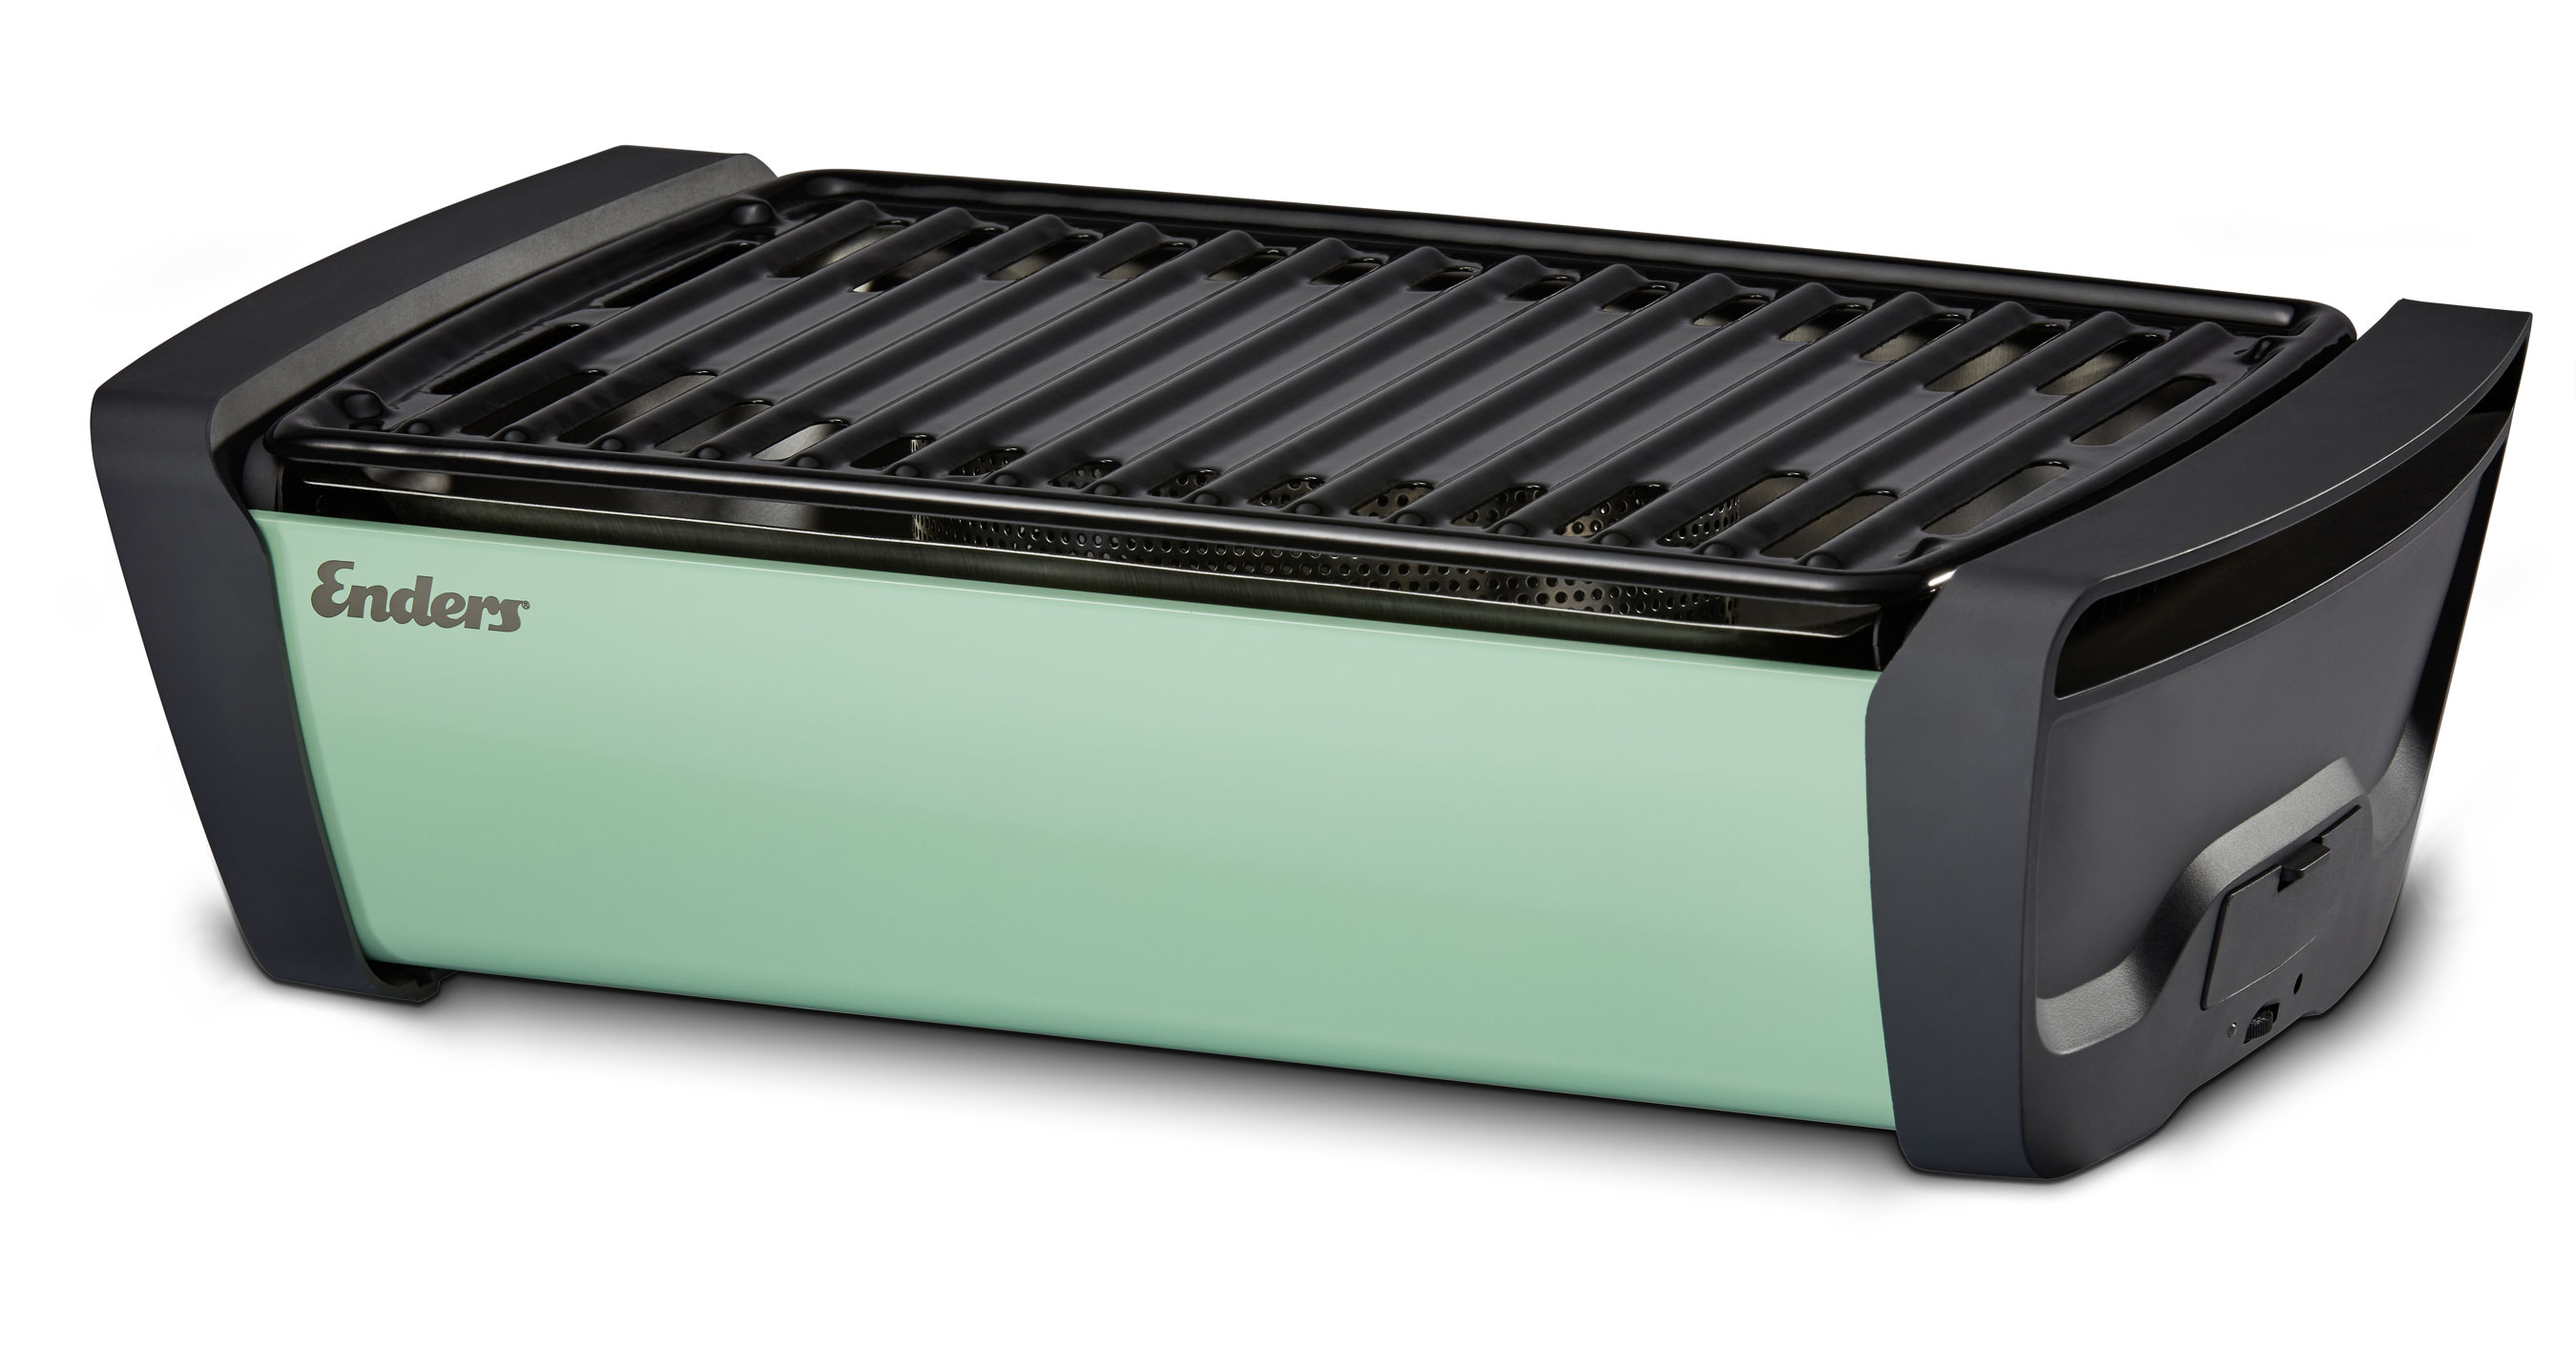 Enders Gasgrill Garantie : Enders urban pro youtube